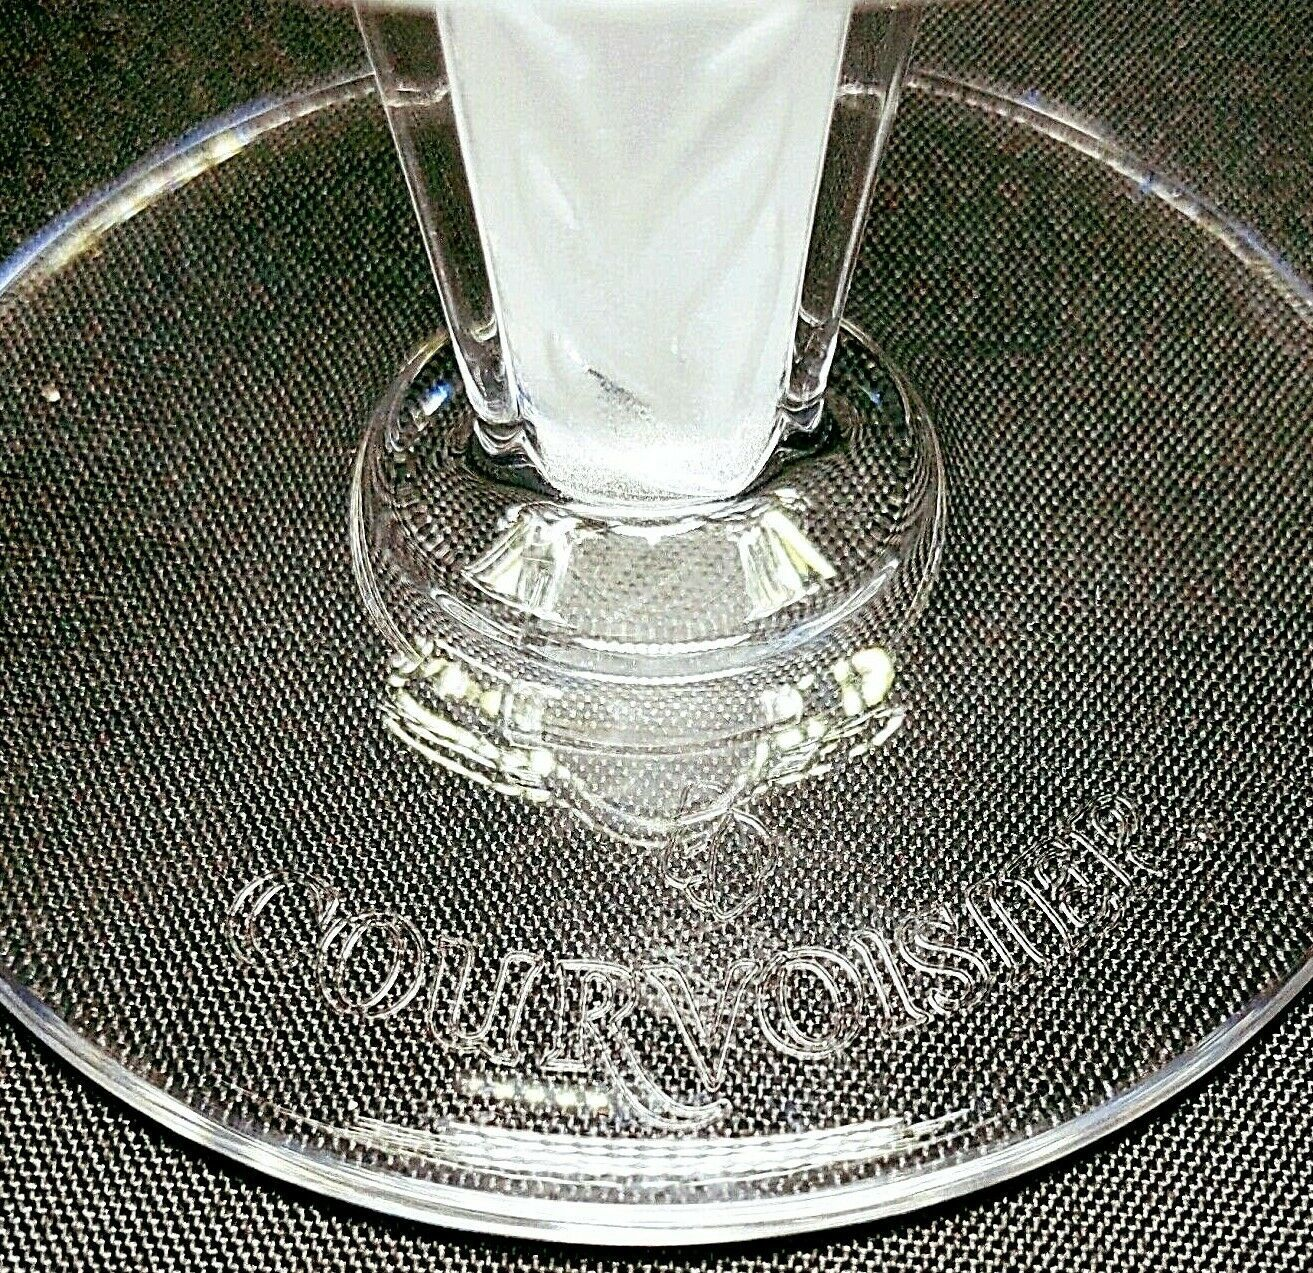 4 (Four) COURVOISIER CRYSTAL COGNAC GLASS / SNIFTER w Frosted Art Deco Stem image 5